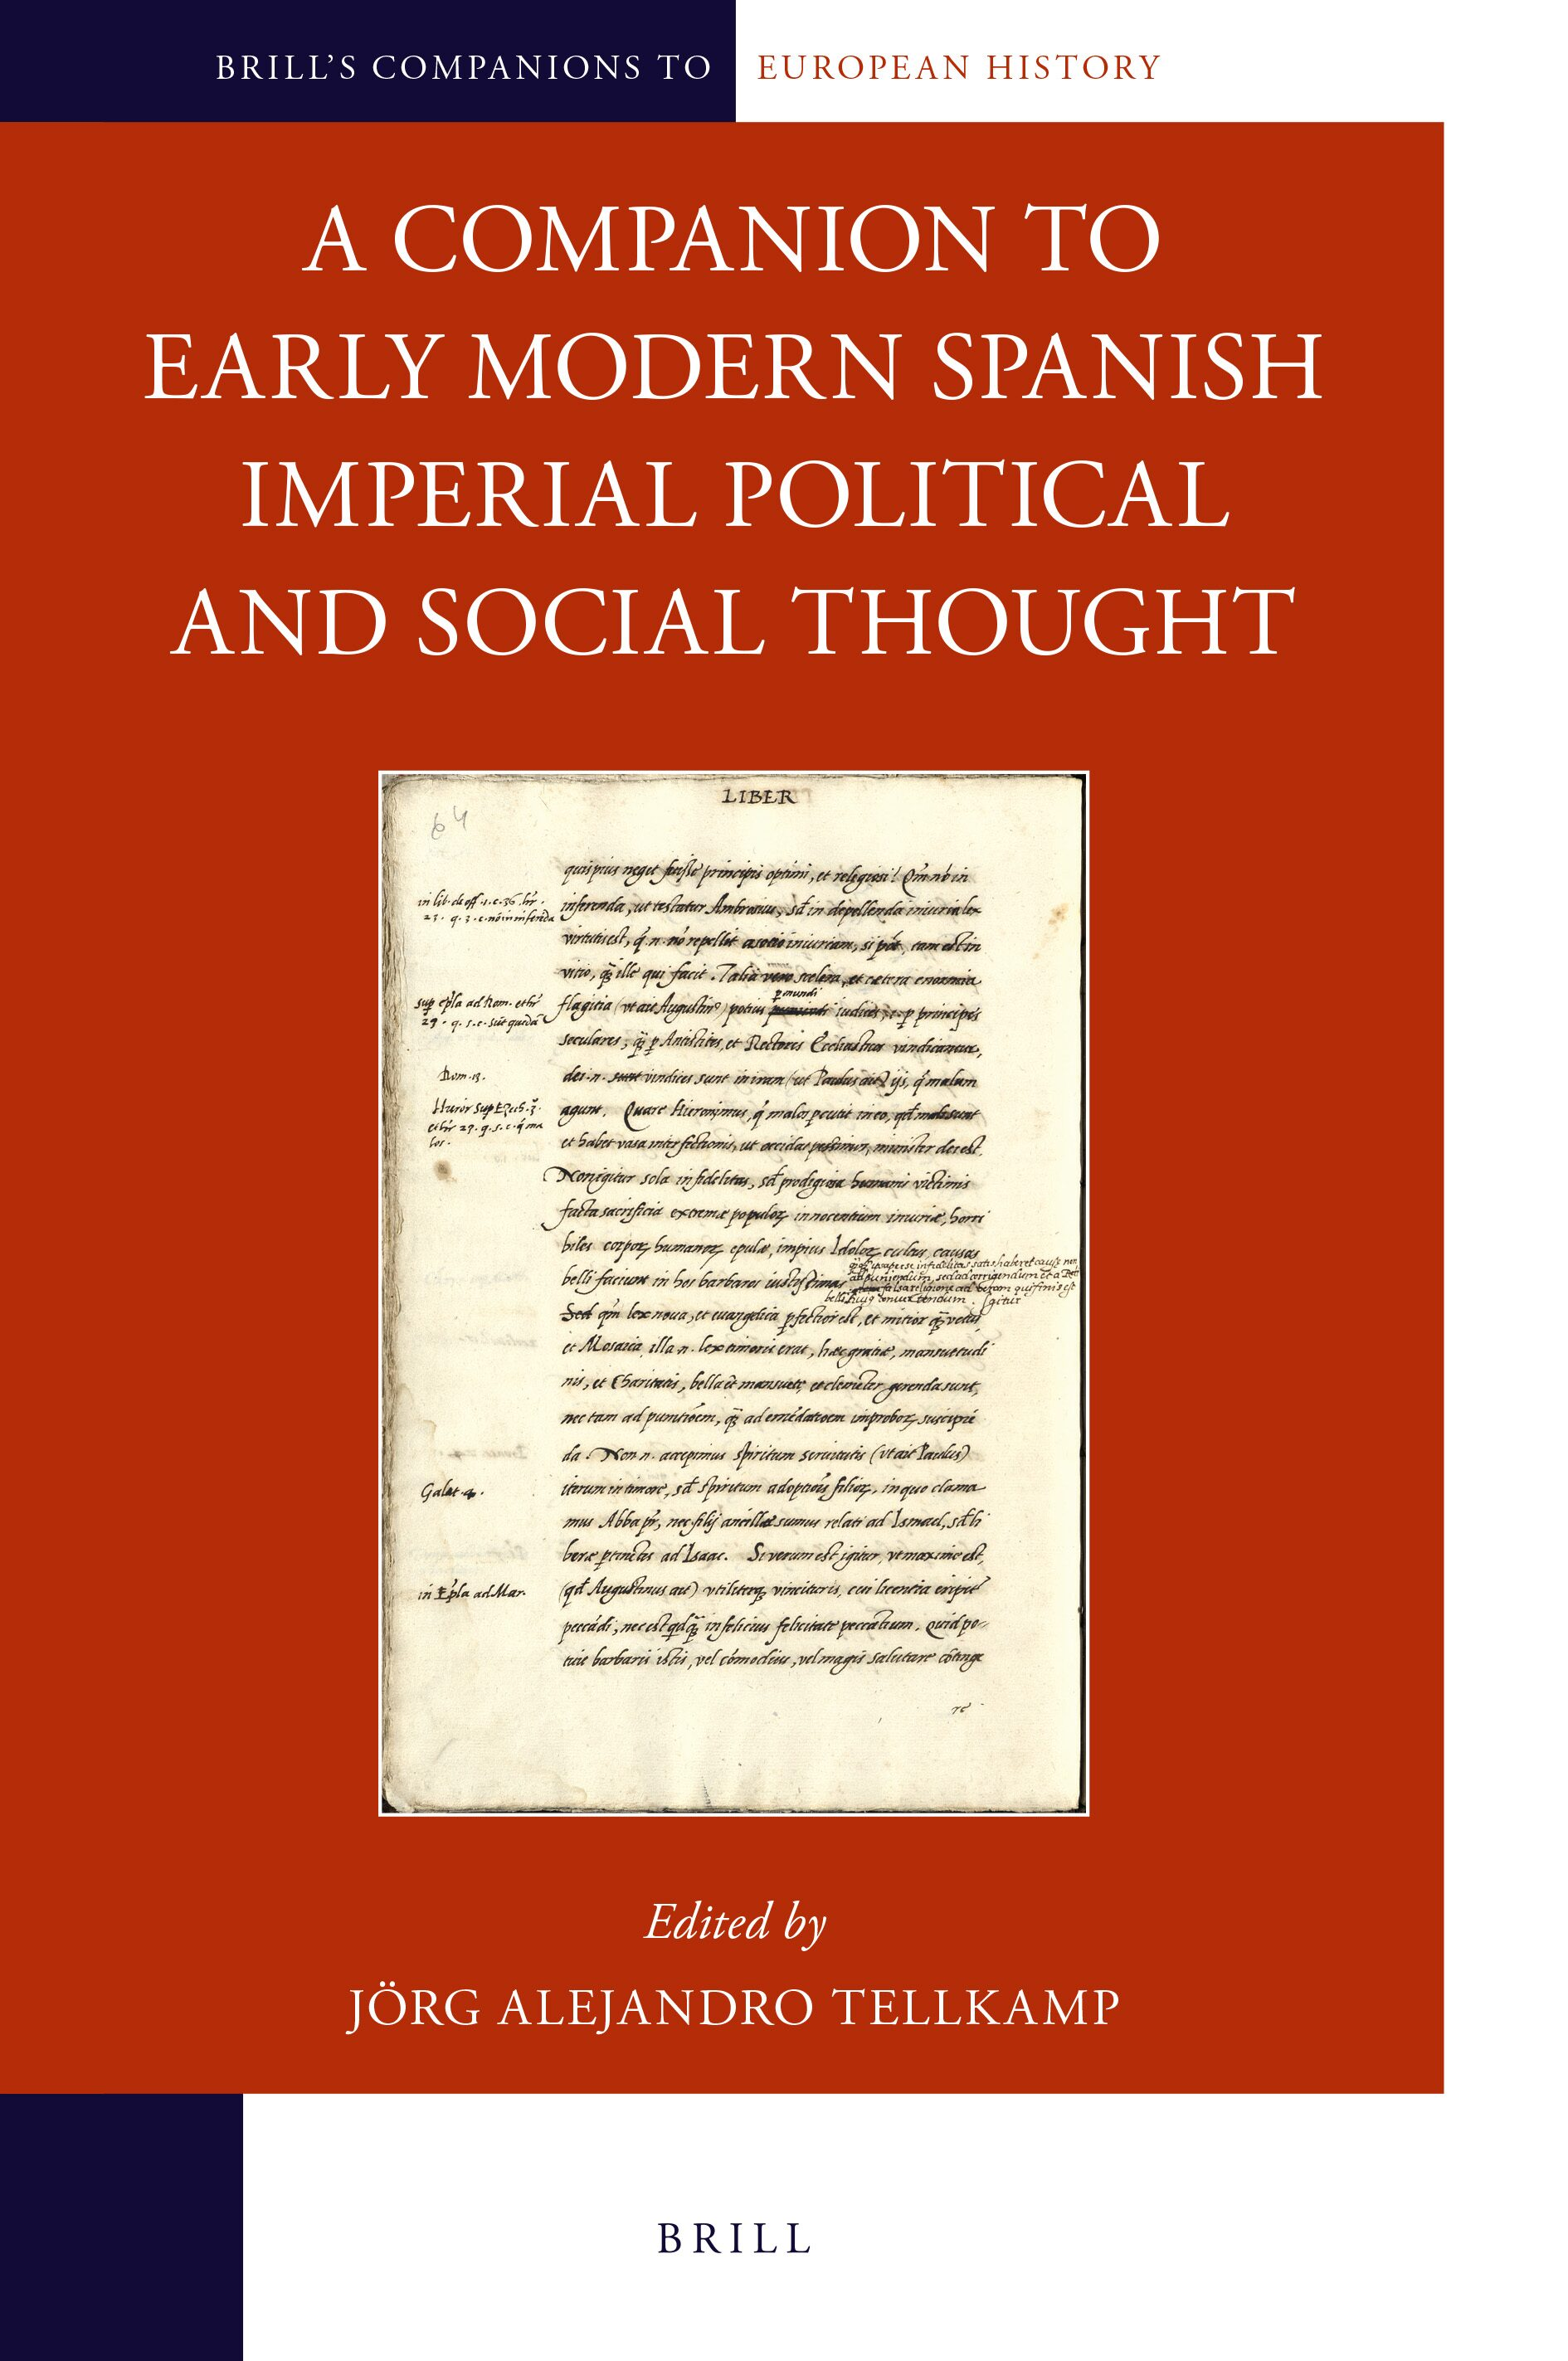 The Debate Of Valladolid 1550 1551 Background Discussions And Results Of The Debate Between Juan Gines De Sepulveda And Bartolome De Las Casas In A Companion To Early Modern Spanish Imperial Political And